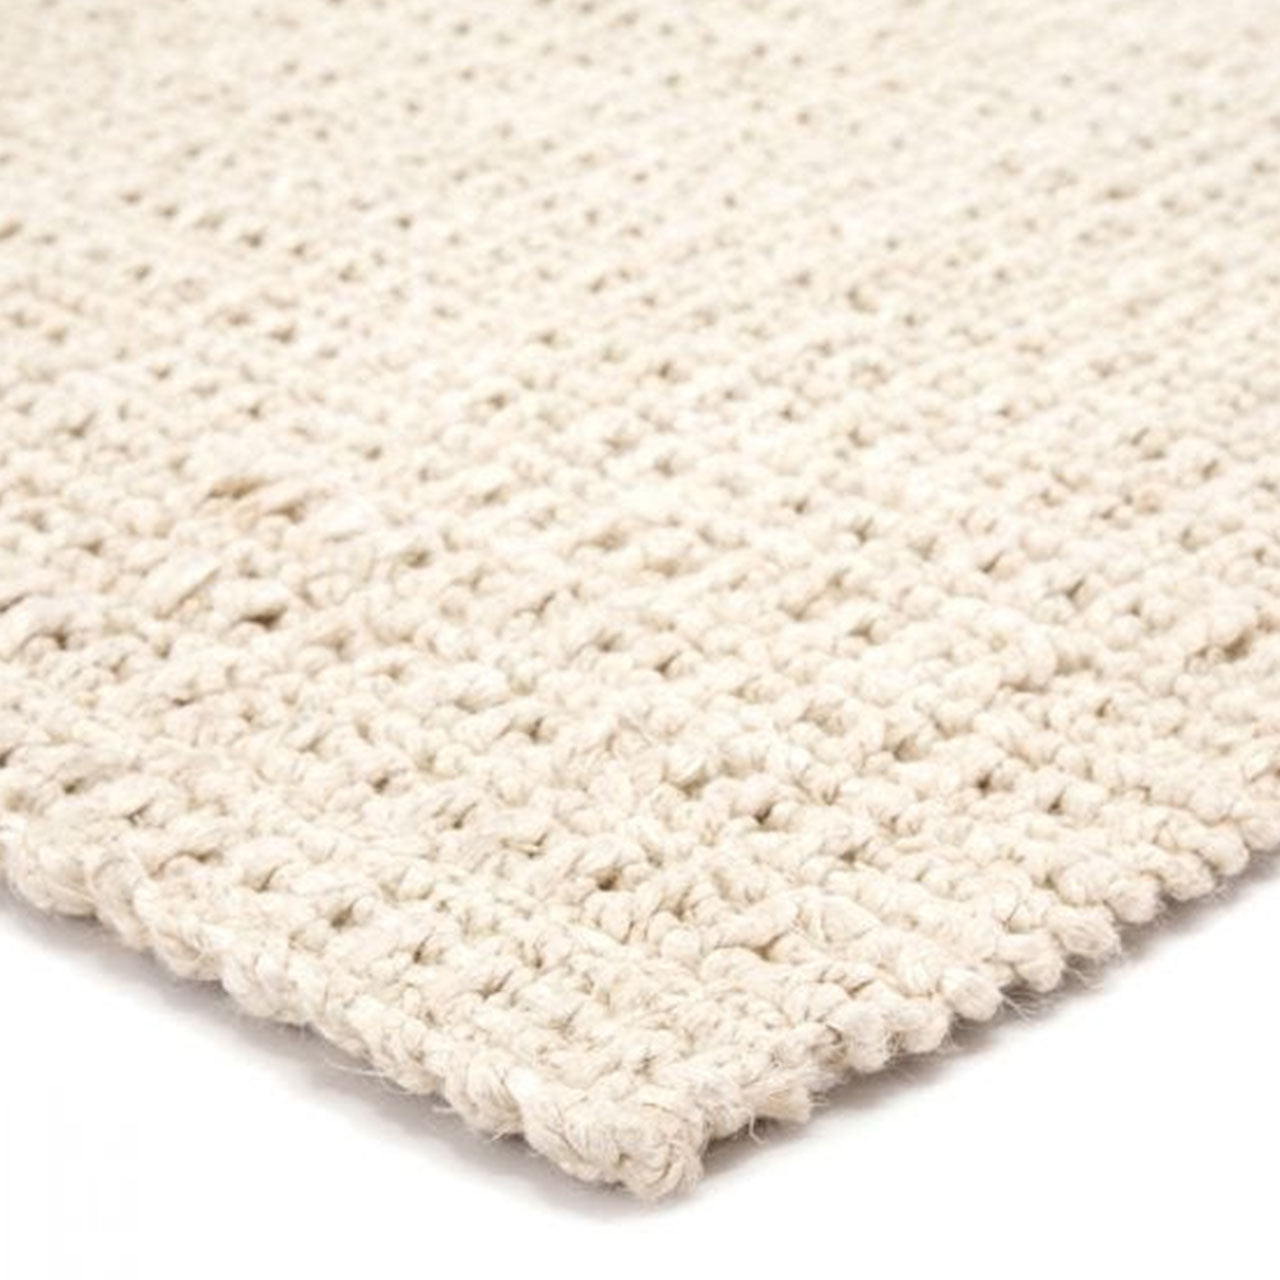 Tiffany Hunter Home & Design Center Solids & Basic Rugs for Sale